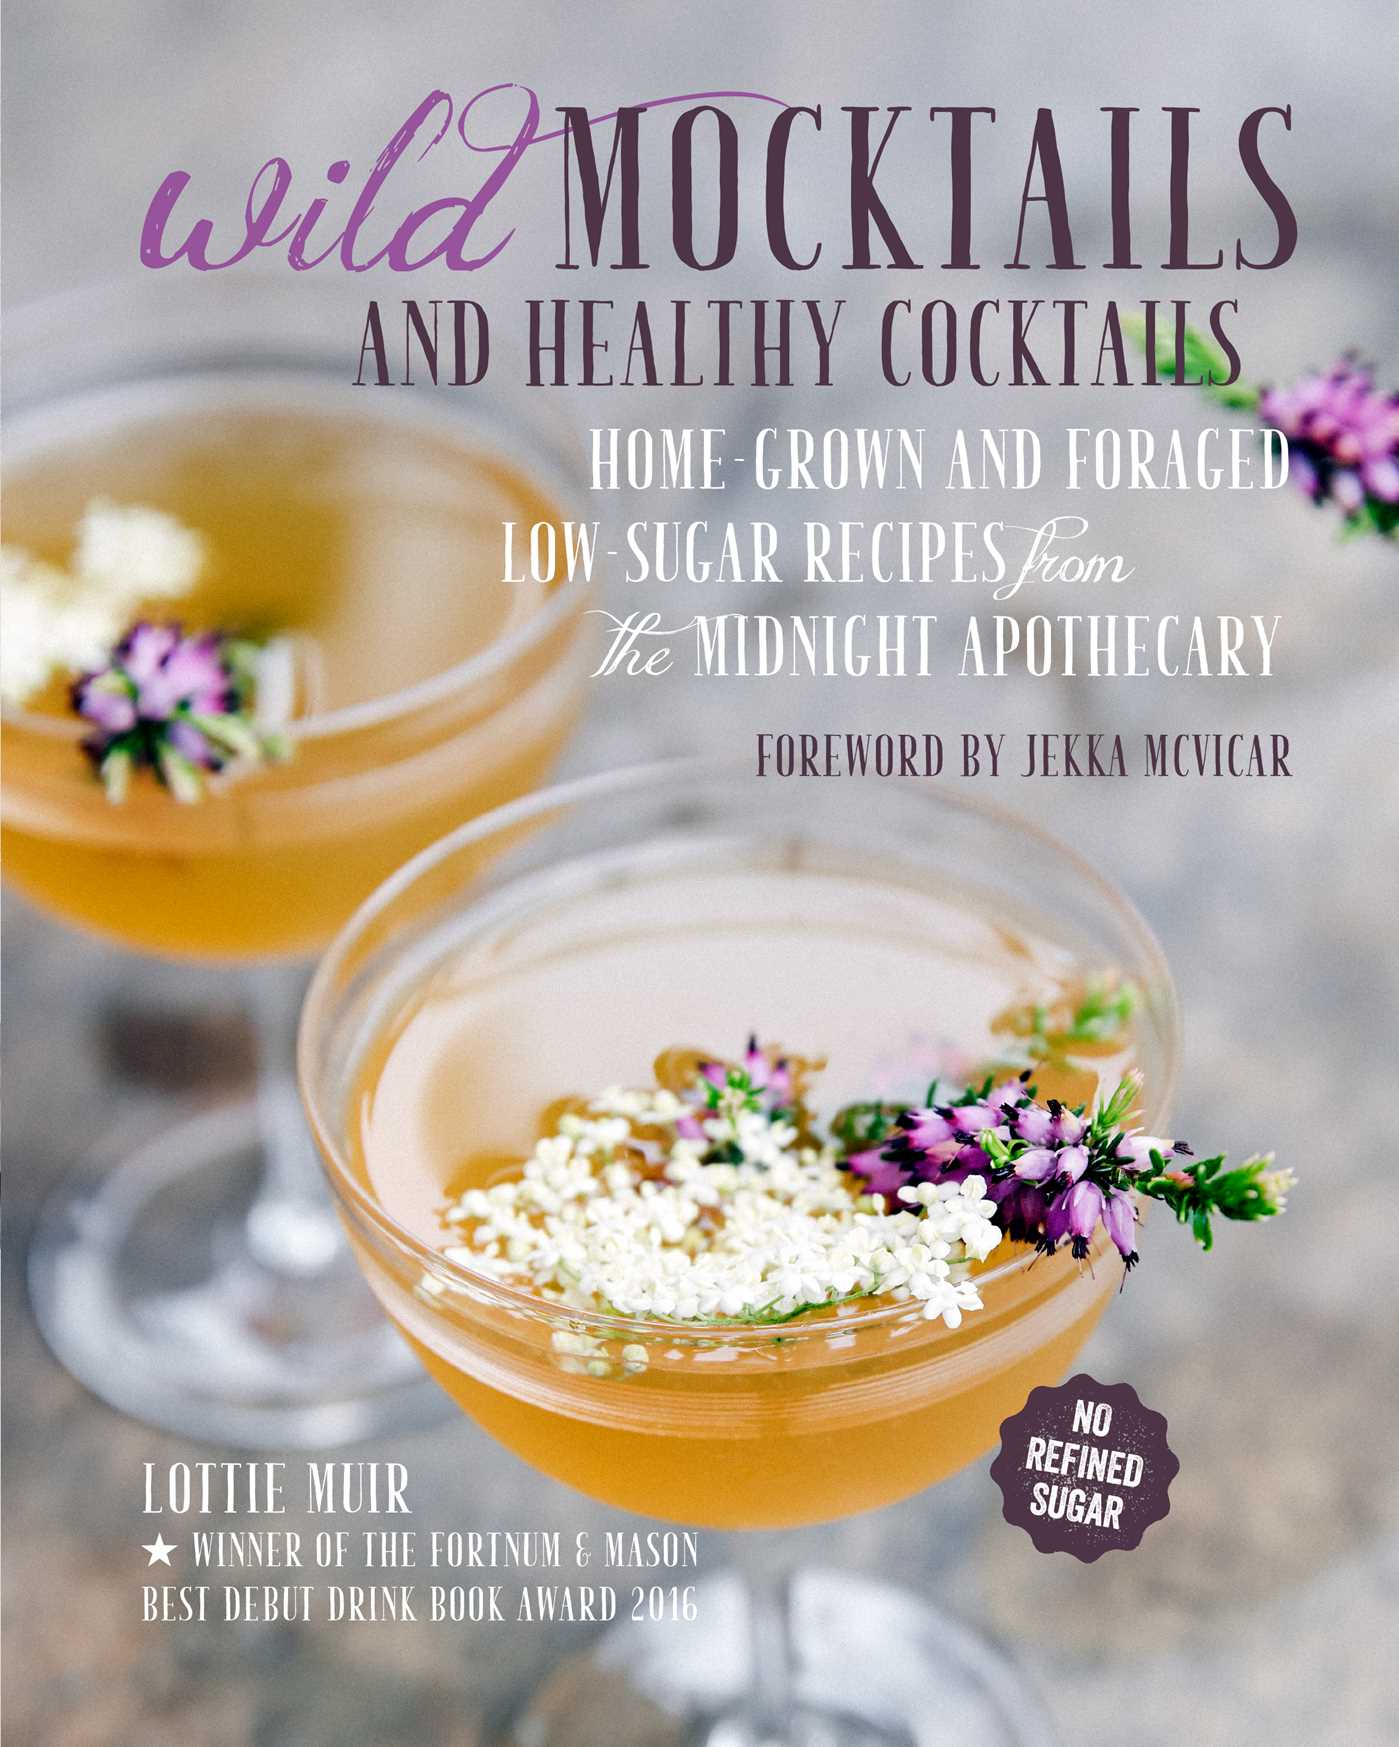 Wild mocktails and healthy cocktails 9781782494430 hr